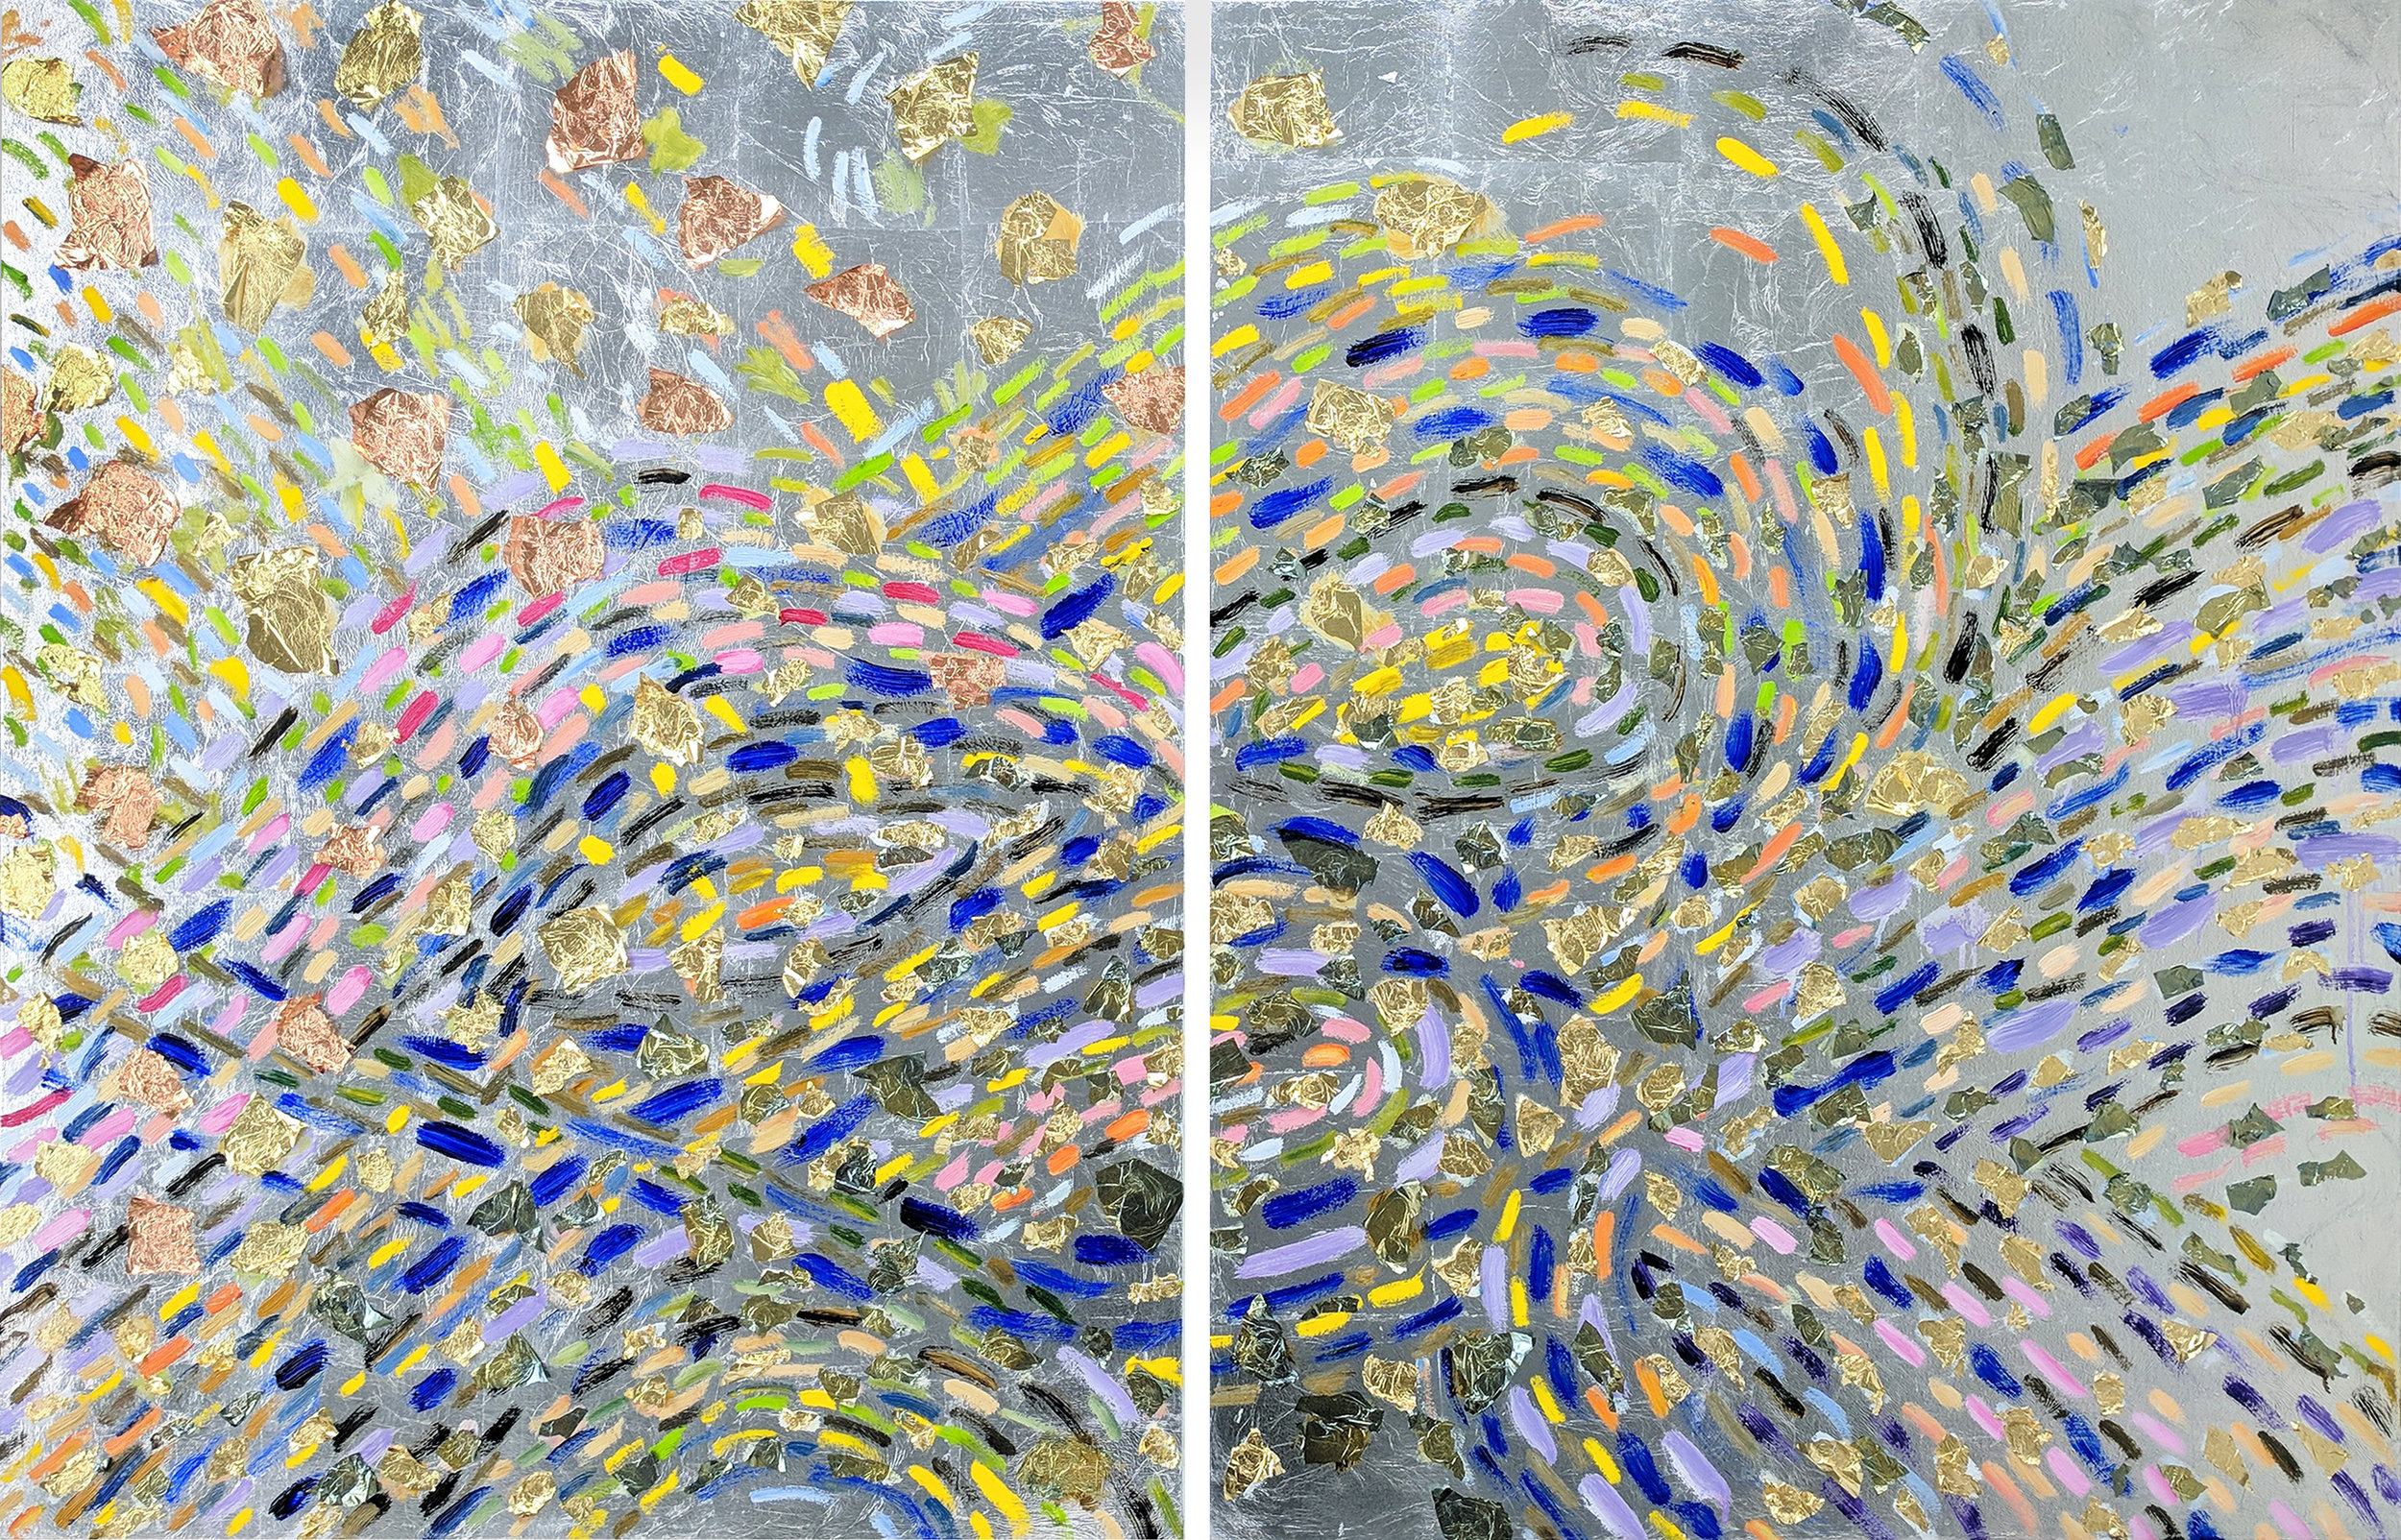 The Chariot, VII#40 x 60 in. total, diptych